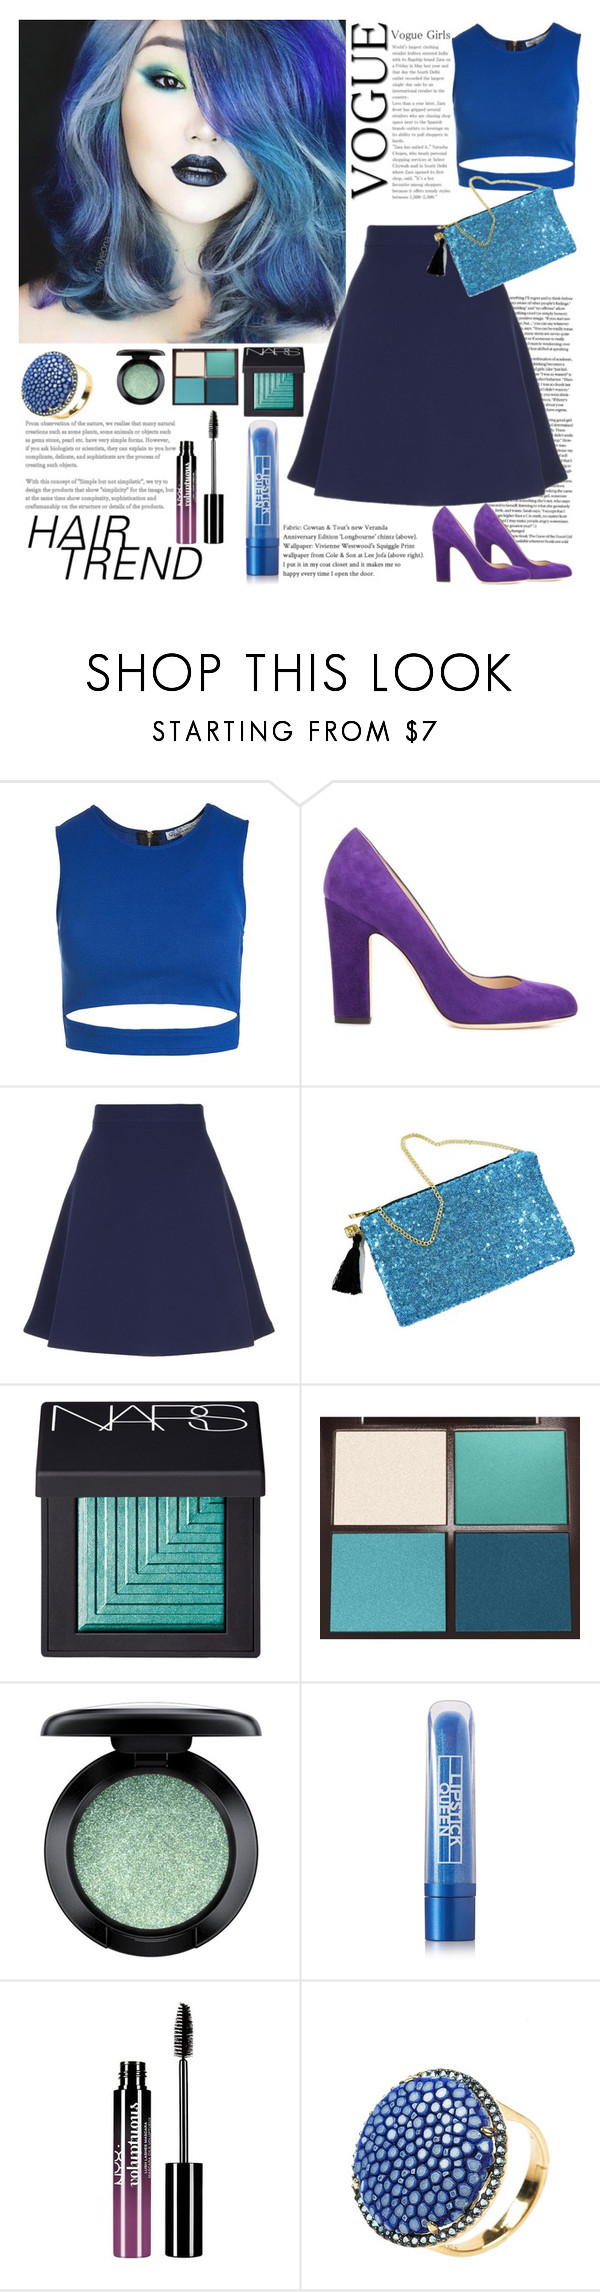 """Senza titolo #5872"" by waikiki24 ❤ liked on Polyvore featuring beauty, Sans Souci, Jimmy Choo, Sandro, NARS Cosmetics, Tom Ford, MAC Cosmetics, Lipstick Queen, Charlotte Russe and hairtrend"